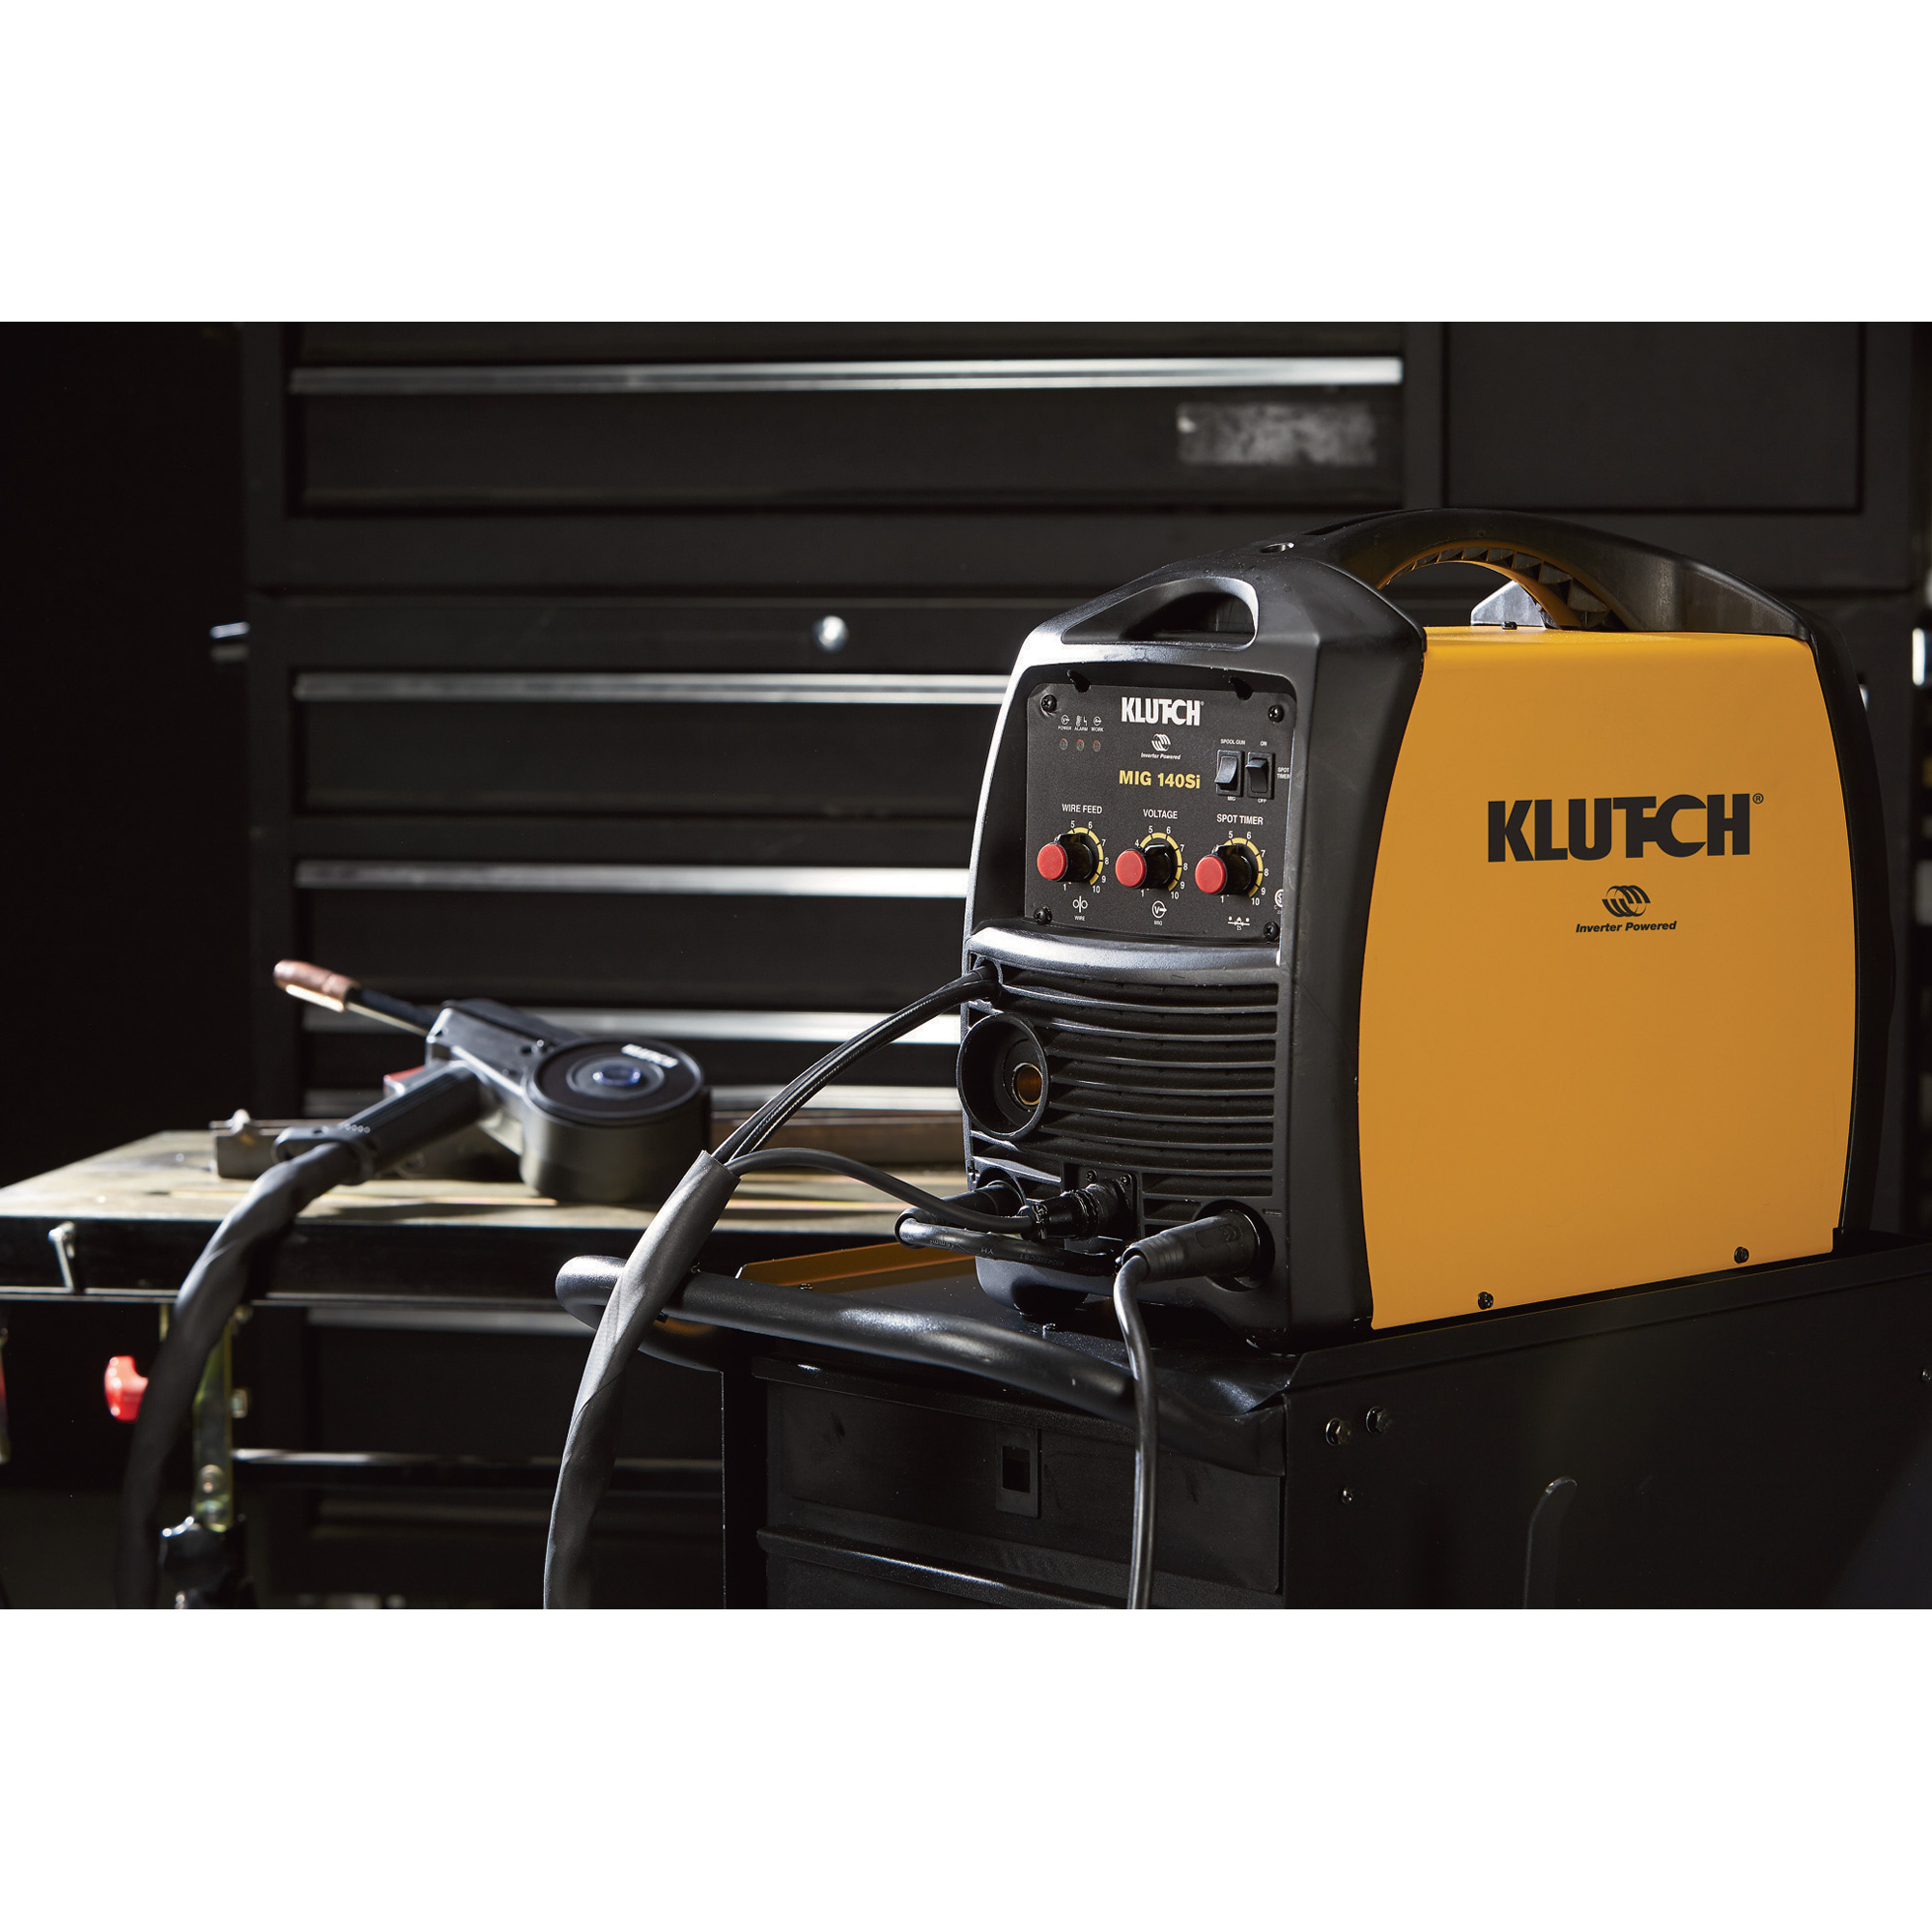 Klutch Mig 140si Flux Core Welder Inverter 115v 30140 Amp Diagram As Well Welding Machine On Arc Wiring 360 Main Product Image Additional Thumbnail 1 2 3 4